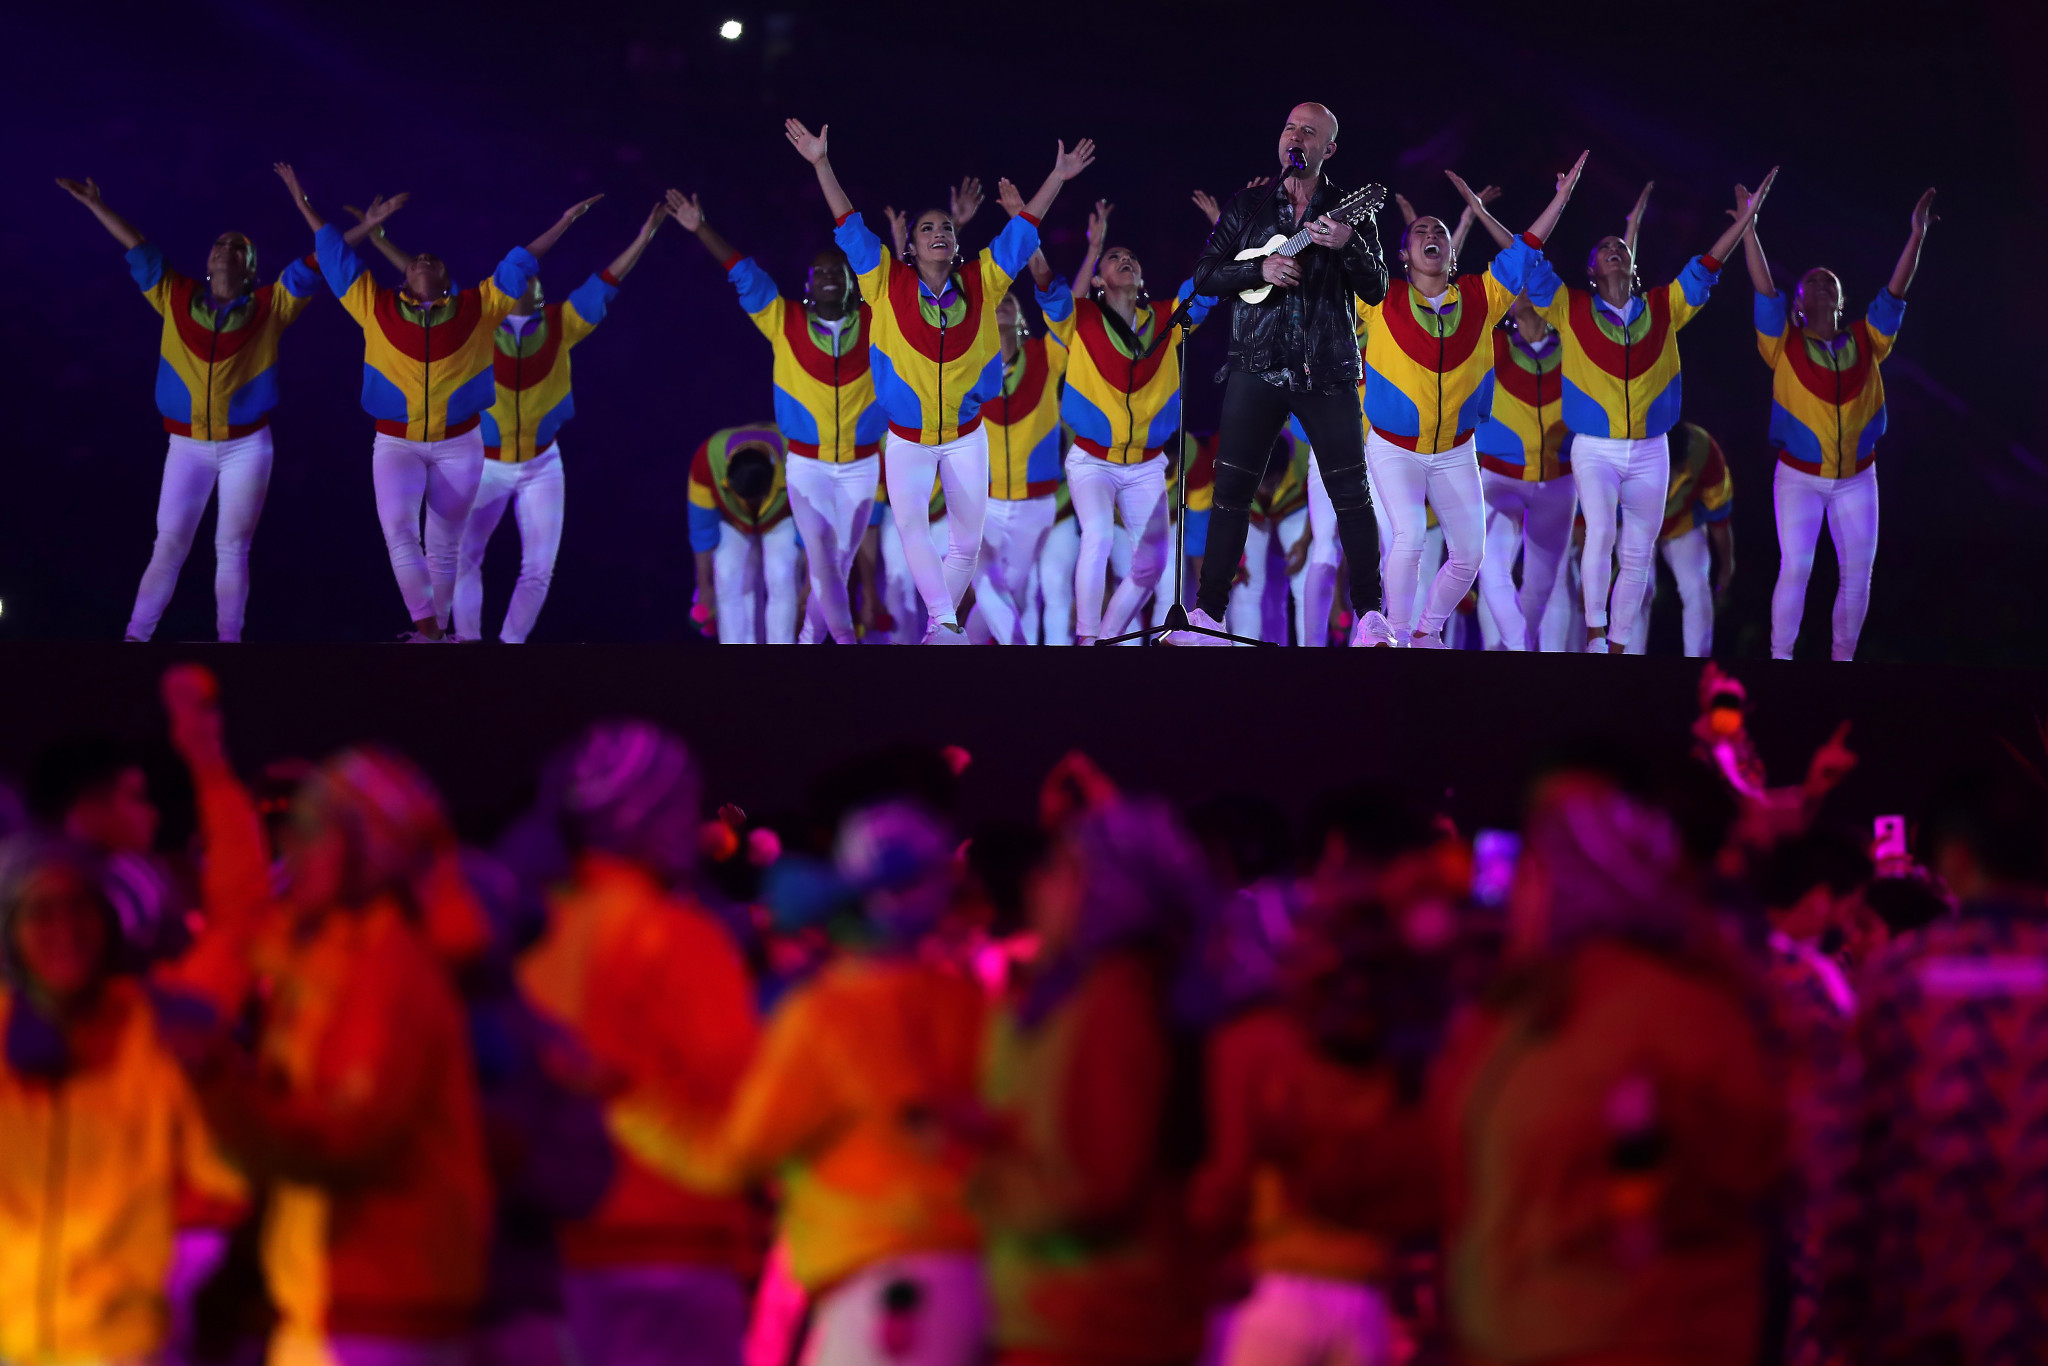 insidethegames is reporting LIVE from the 2019 Pan American Games in Lima